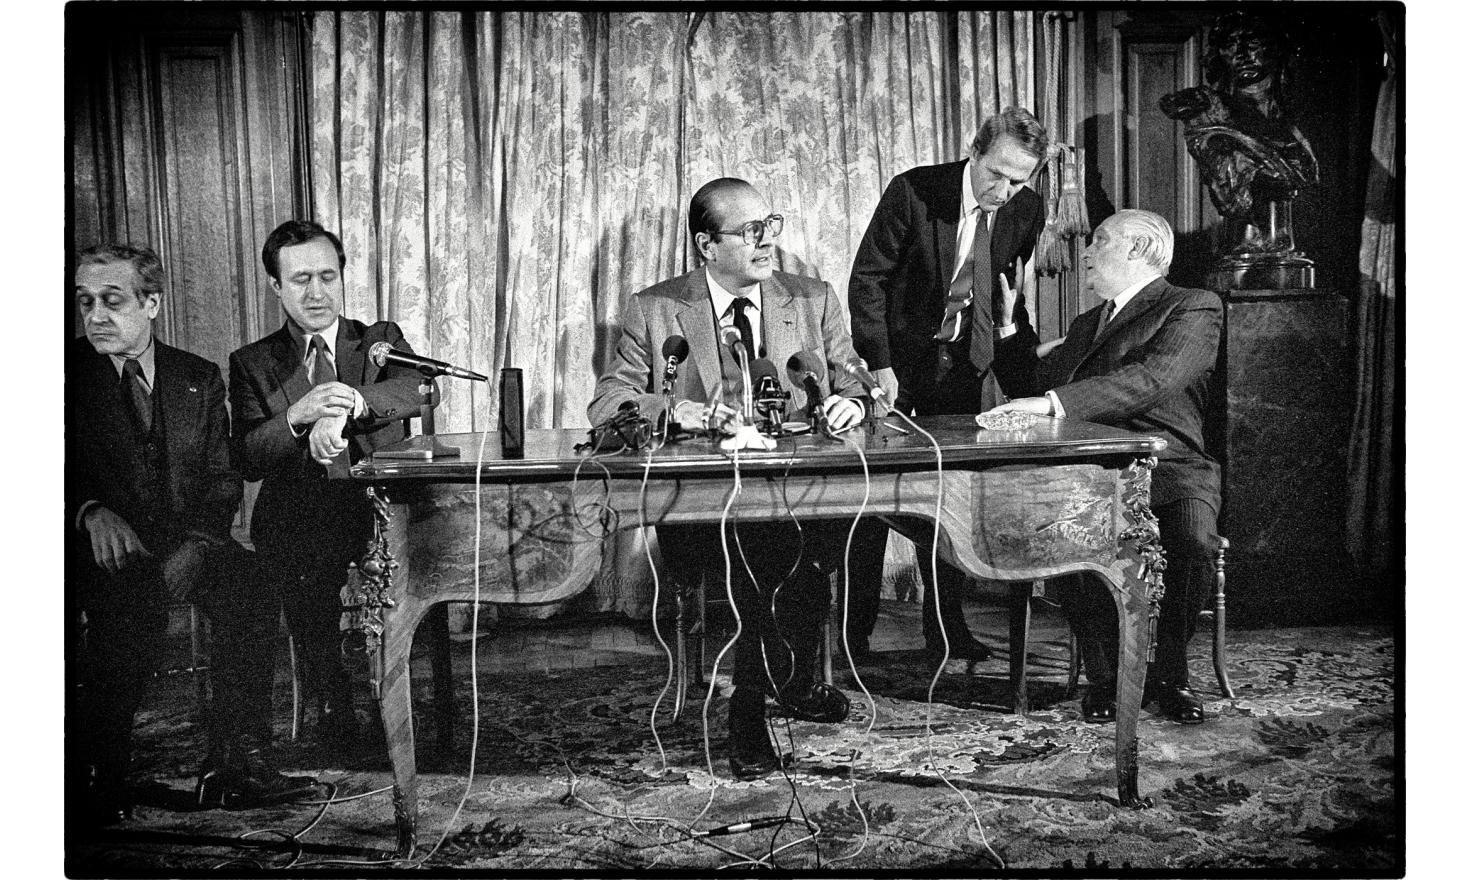 Press conference of the mayor of Paris, Jacques Chirac. He introduces the top candidate for the next municipal elections. Paris, France. December 21, 1982